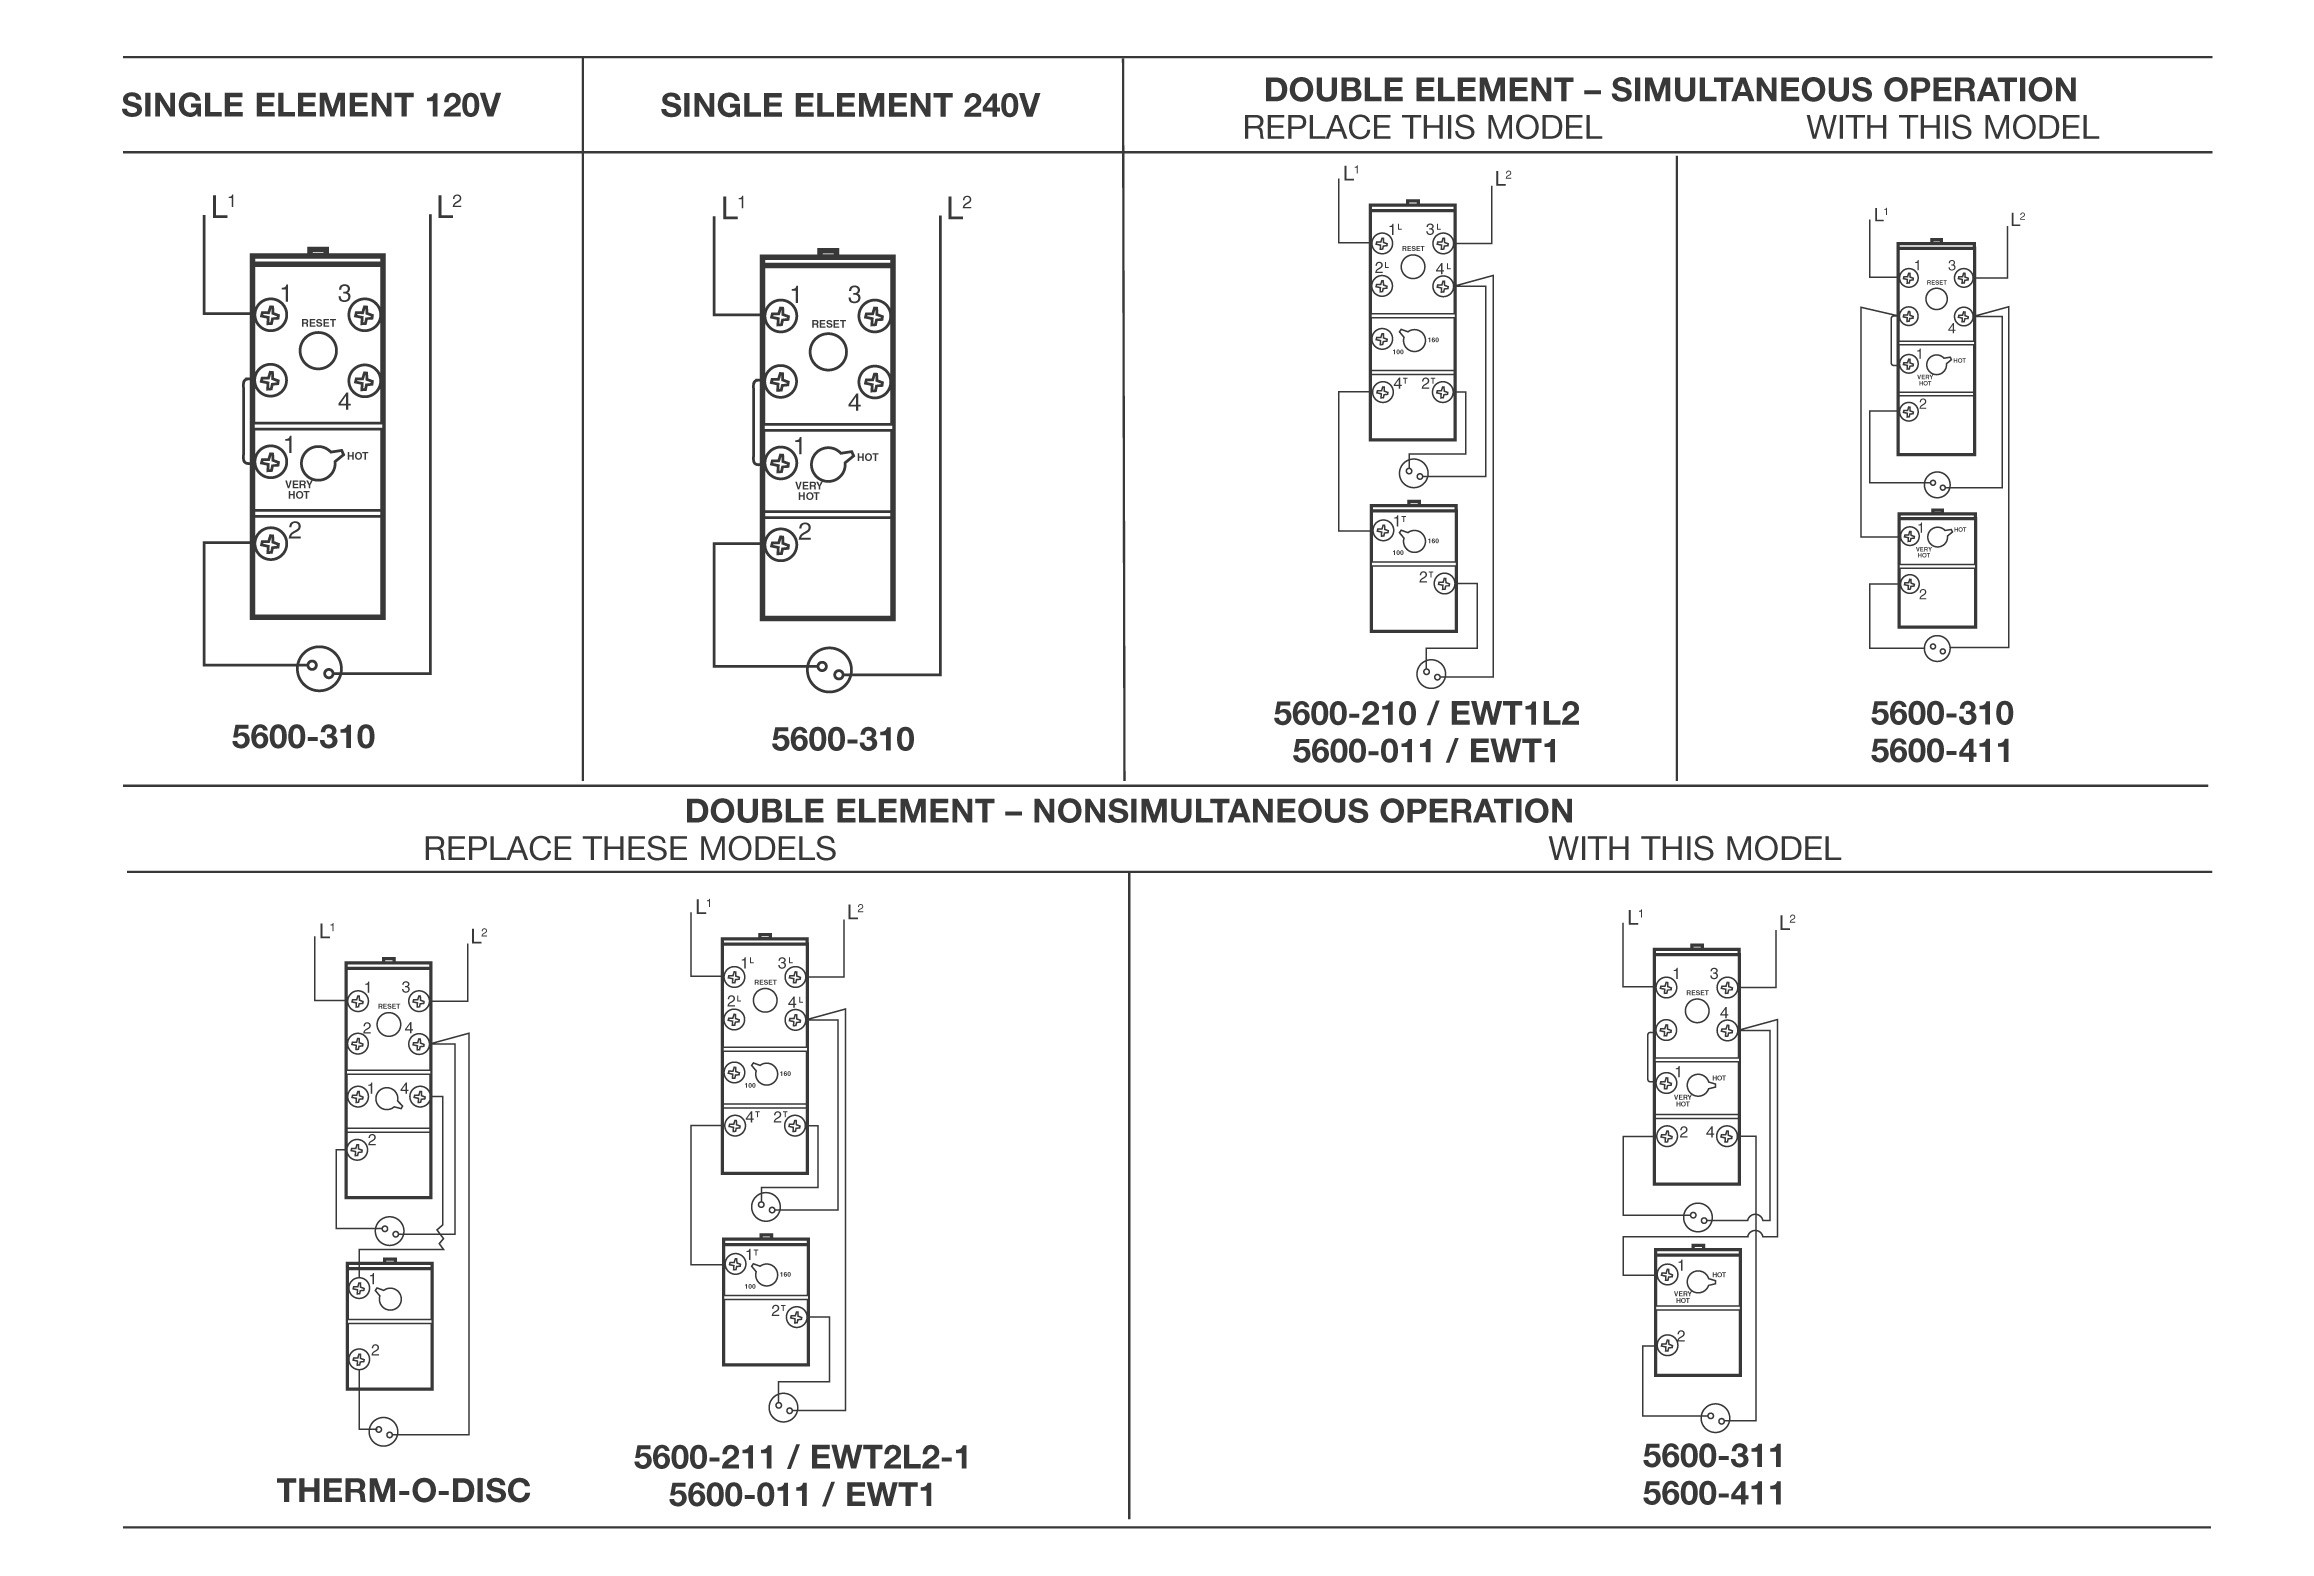 dimplex wiring diagram Collection-Wiring Diagram For Dimplex Baseboard Heater Save Baseboard Heater Thermostat Wiring Diagram Lovely Wiring For 10-j